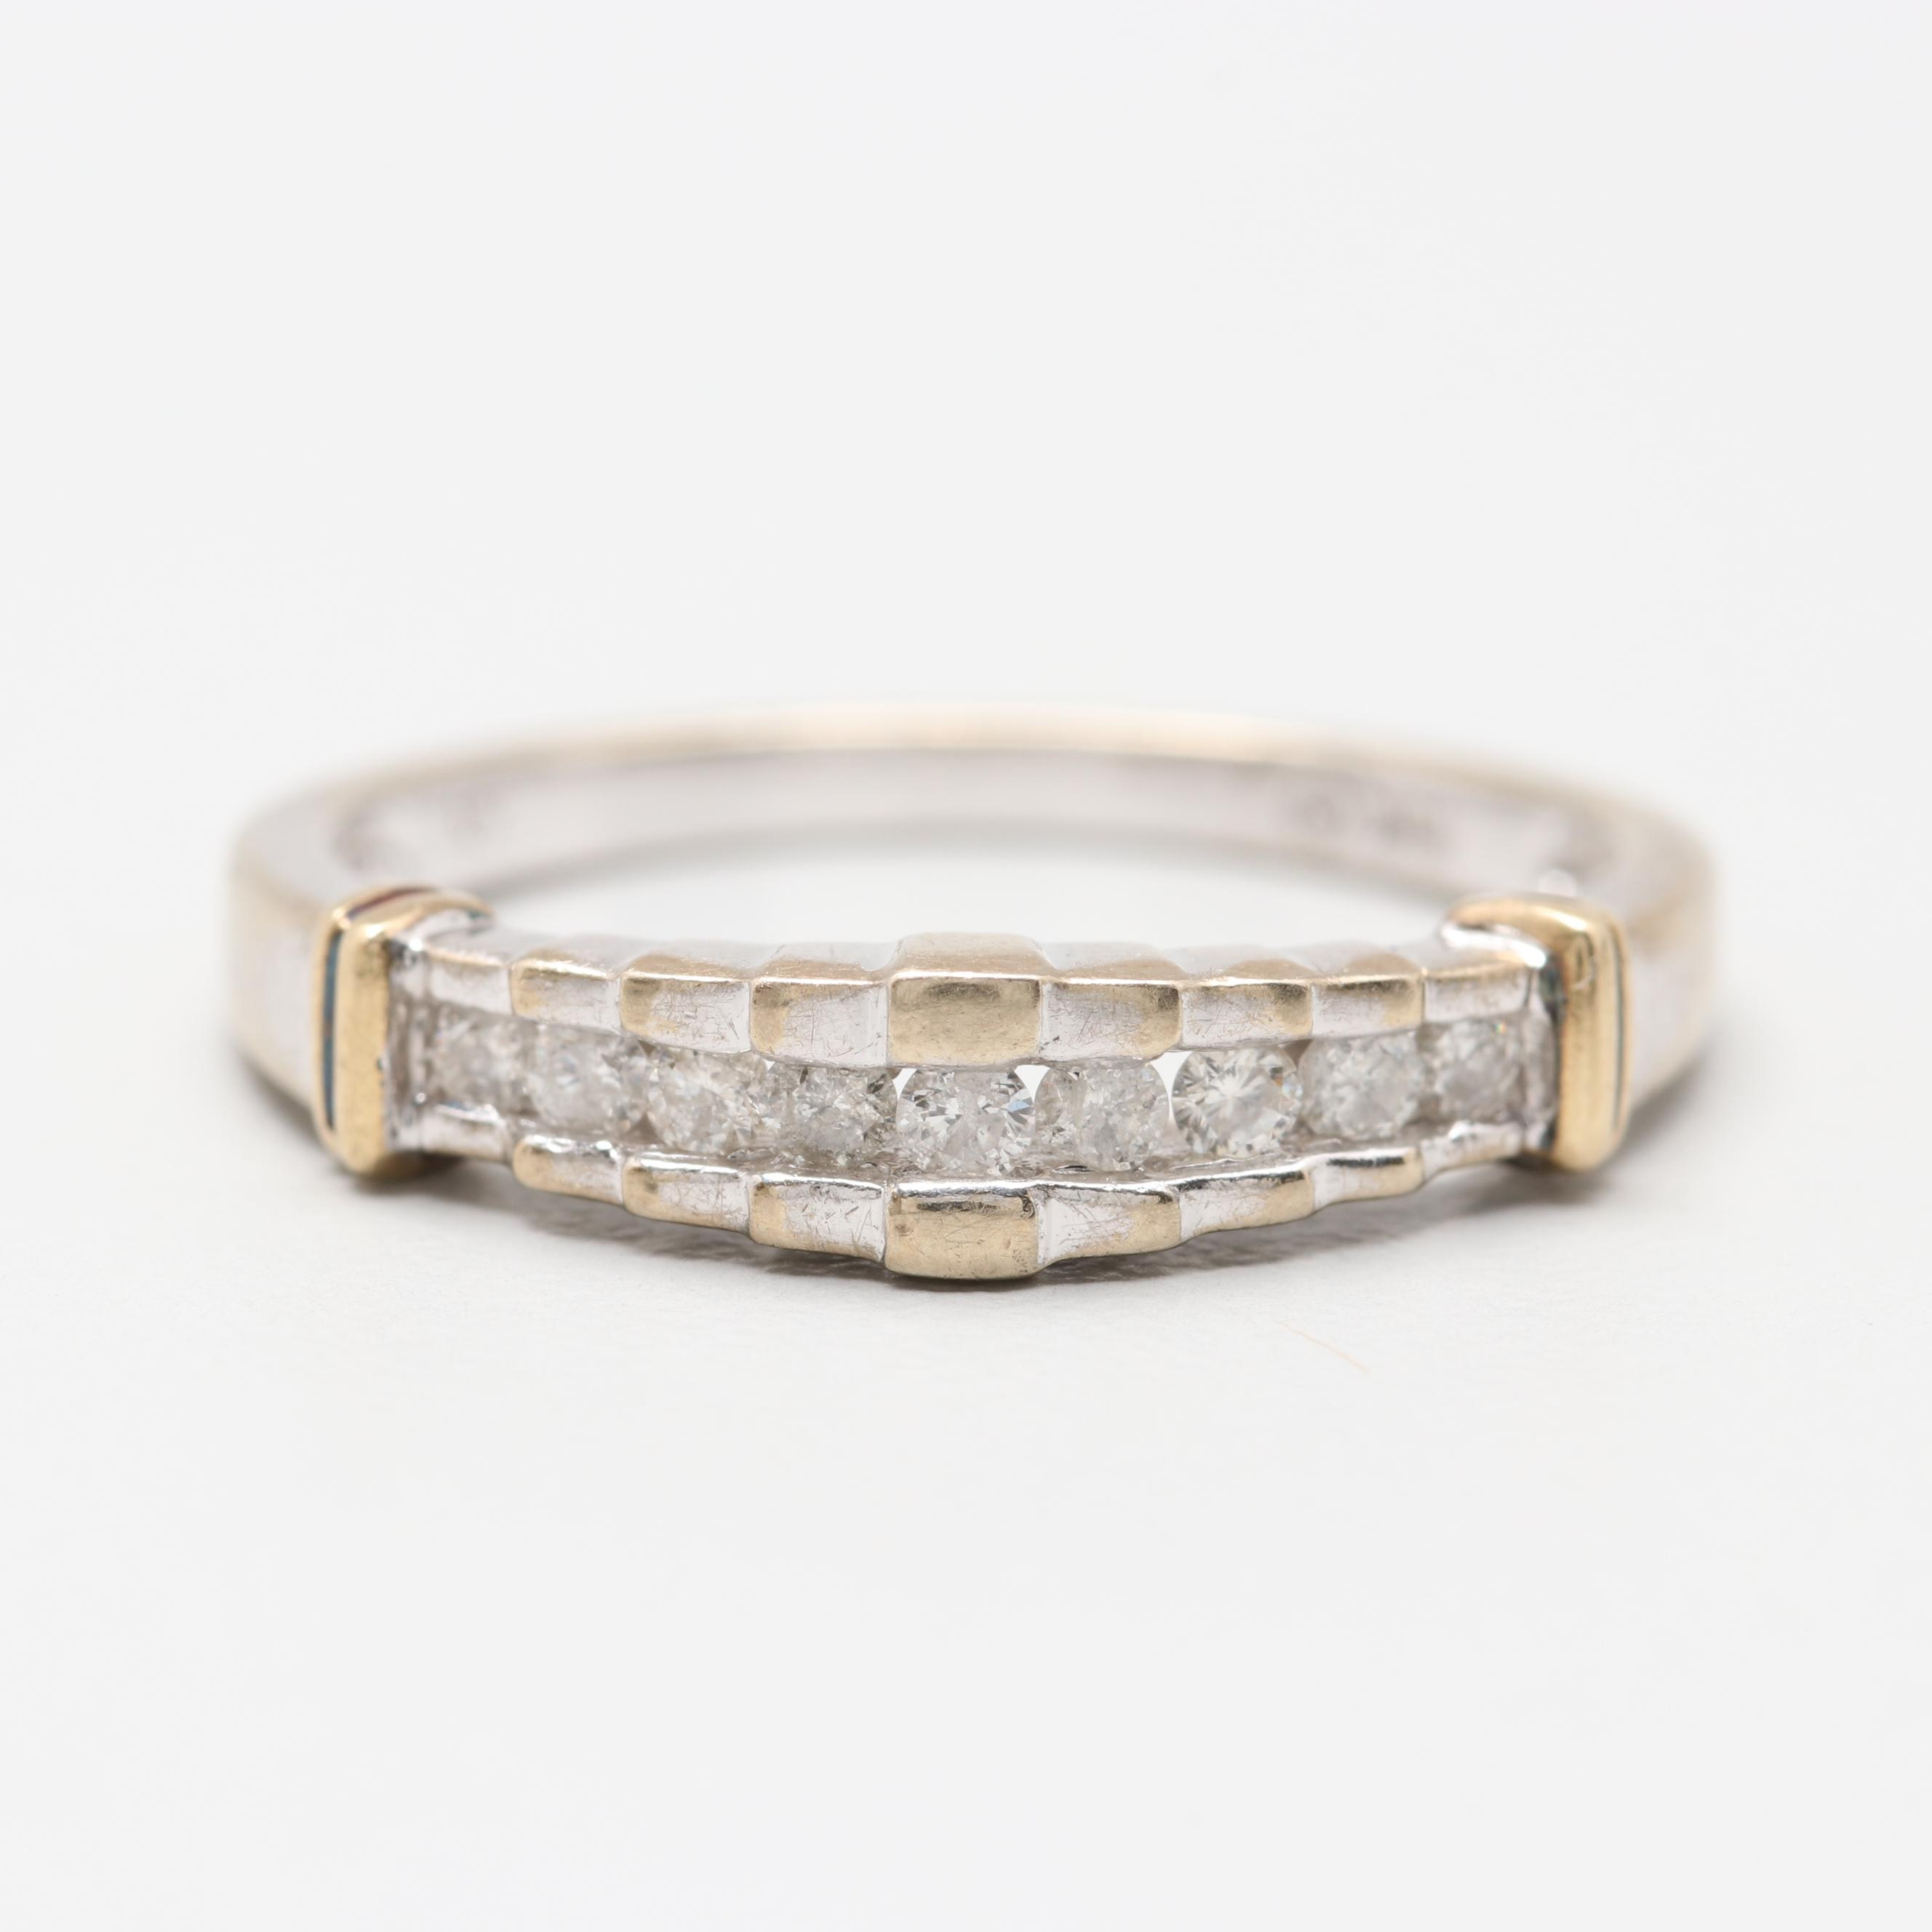 10K White Gold Diamond Ring with Yellow Gold Accents